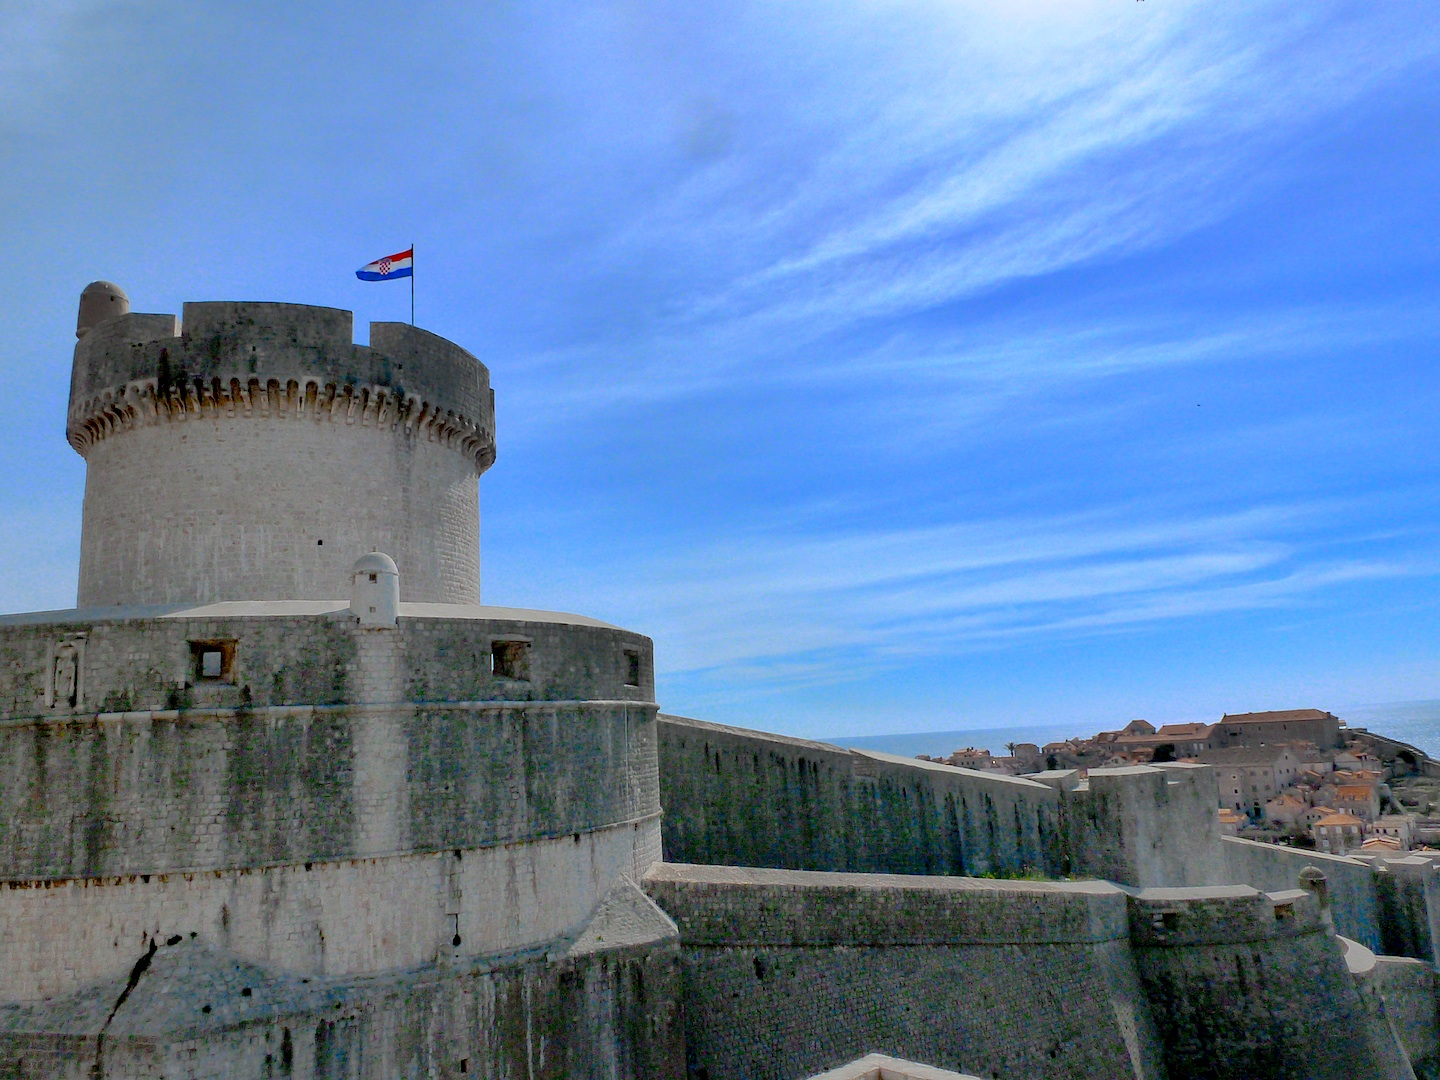 The Citadel in Old Town.